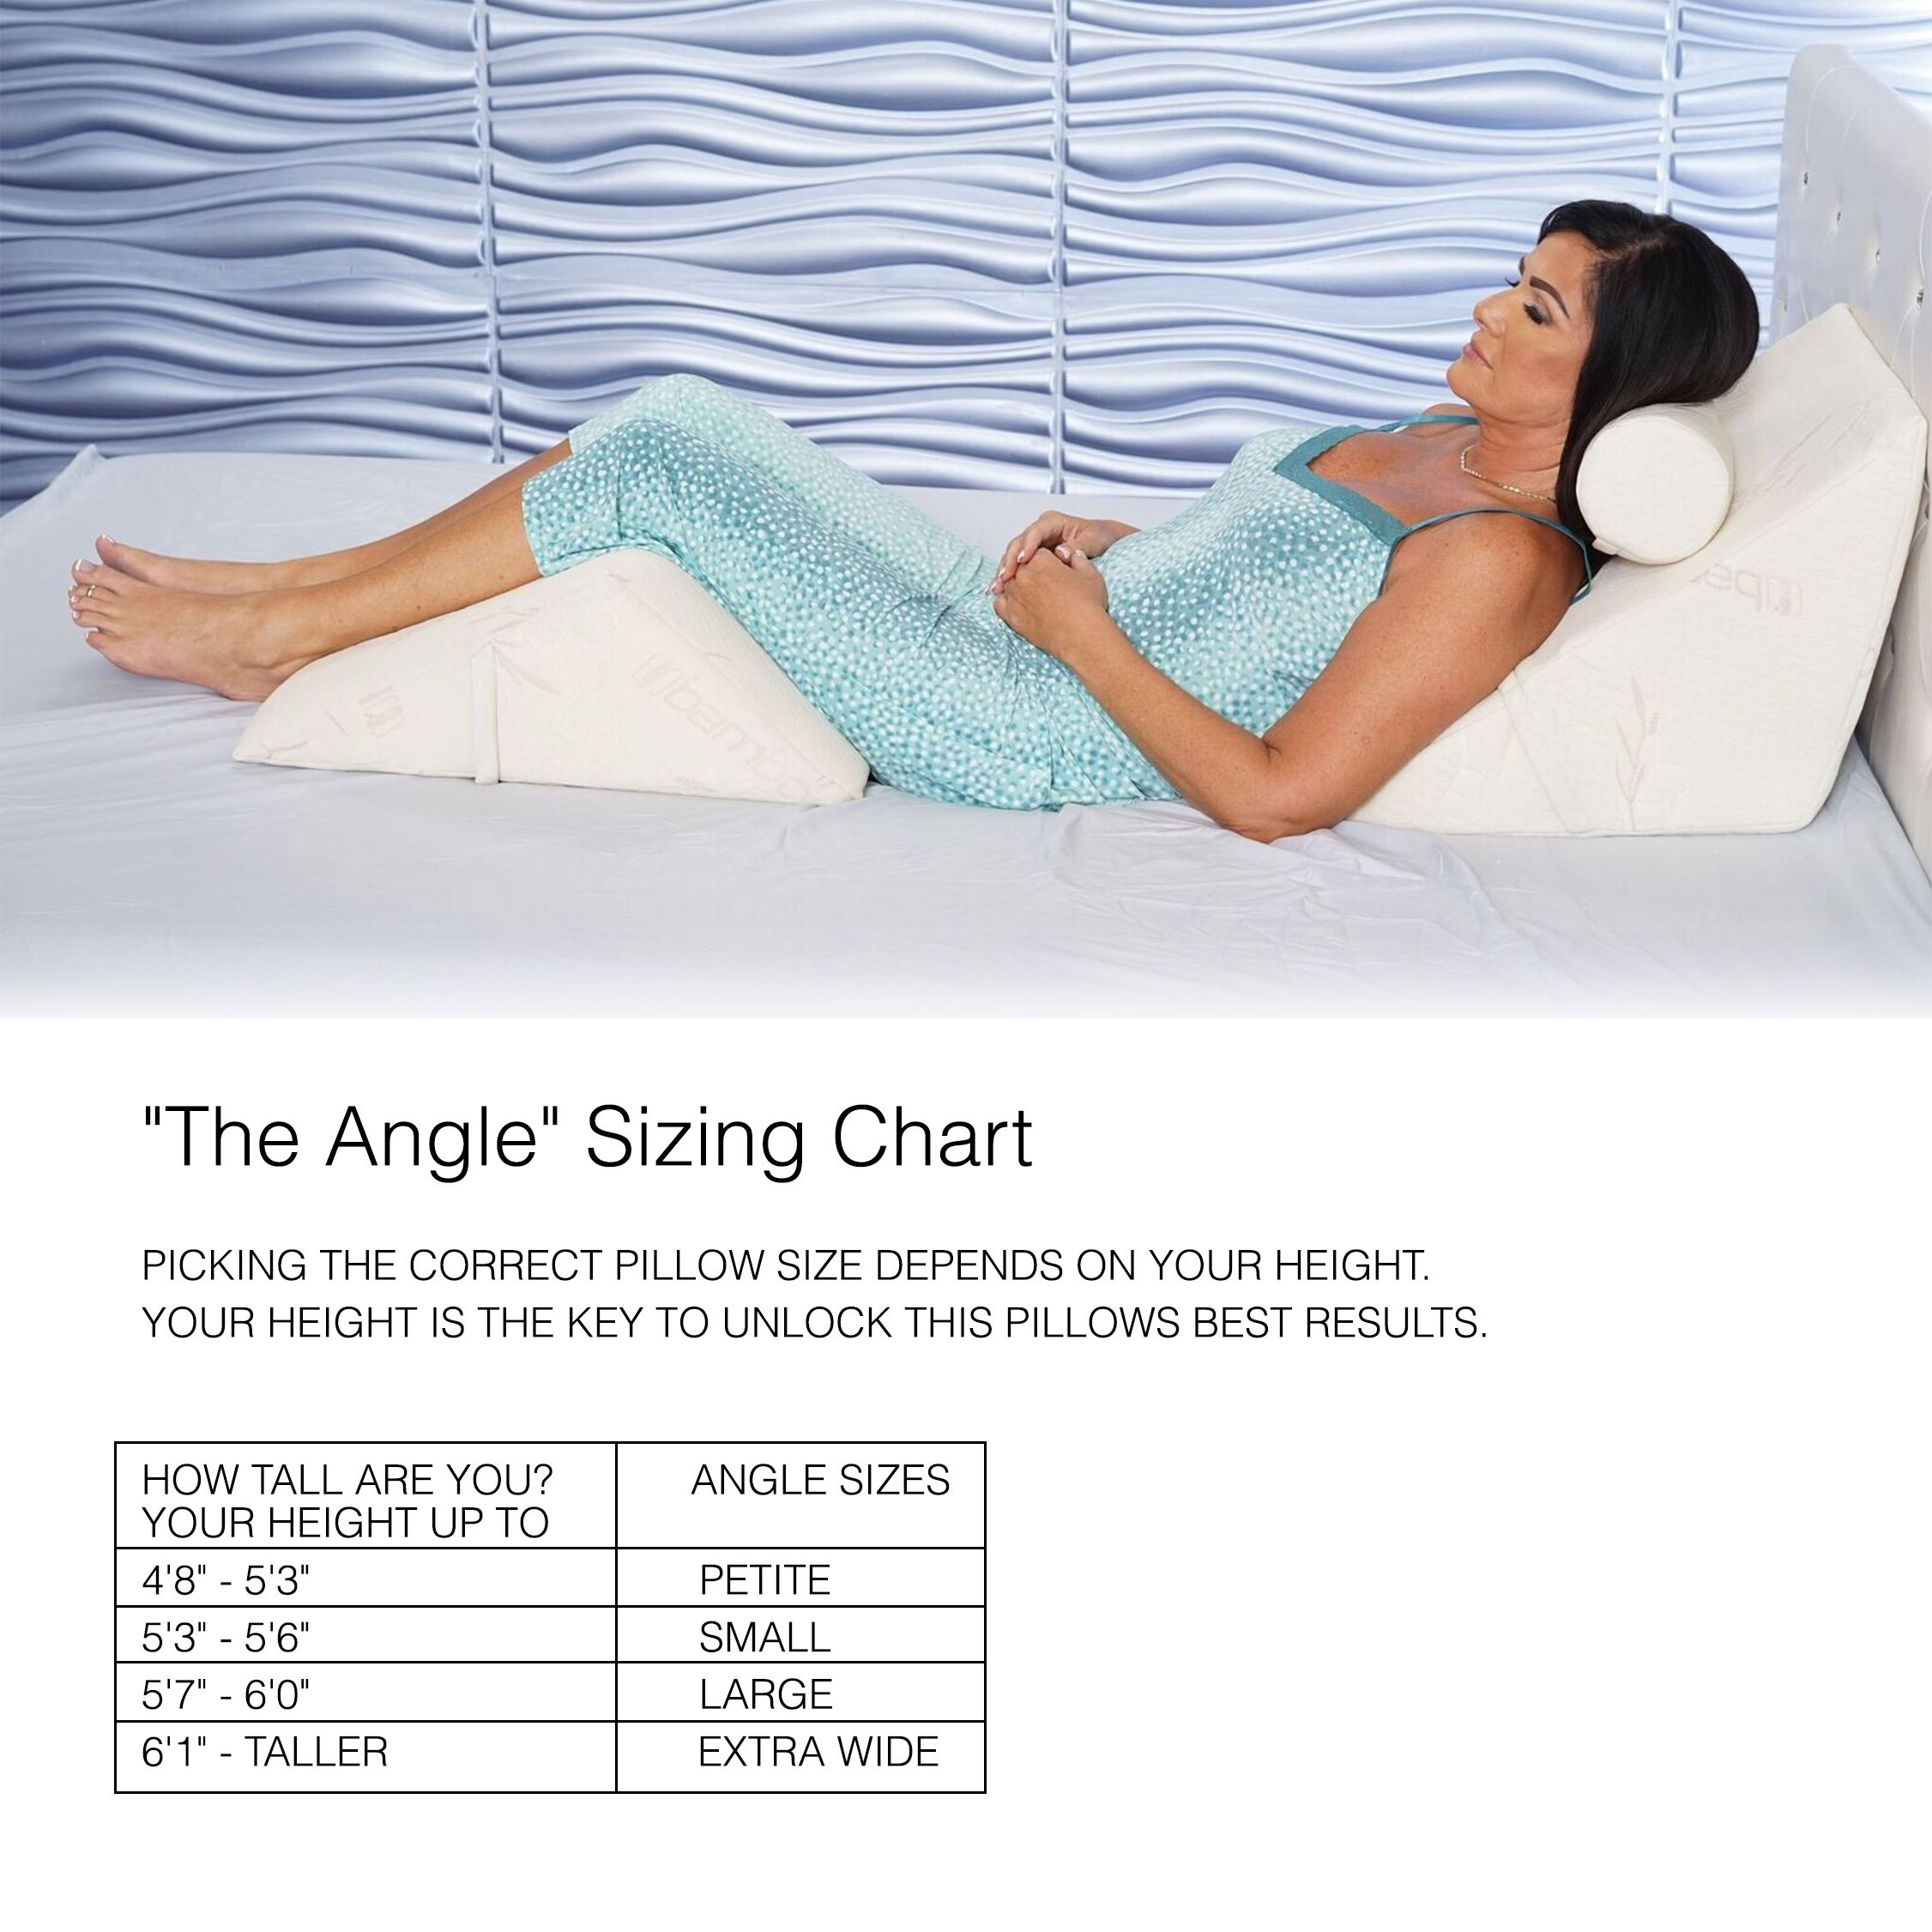 ''The Angle'' 3 piece Body Support - w/ Large Angle, Help Reduce Back Pain Immediately! Over 1 Million Happy Backs. Therapy Wedge, Extra Plush Memory Foam, Made in USA, provides back and neck relief